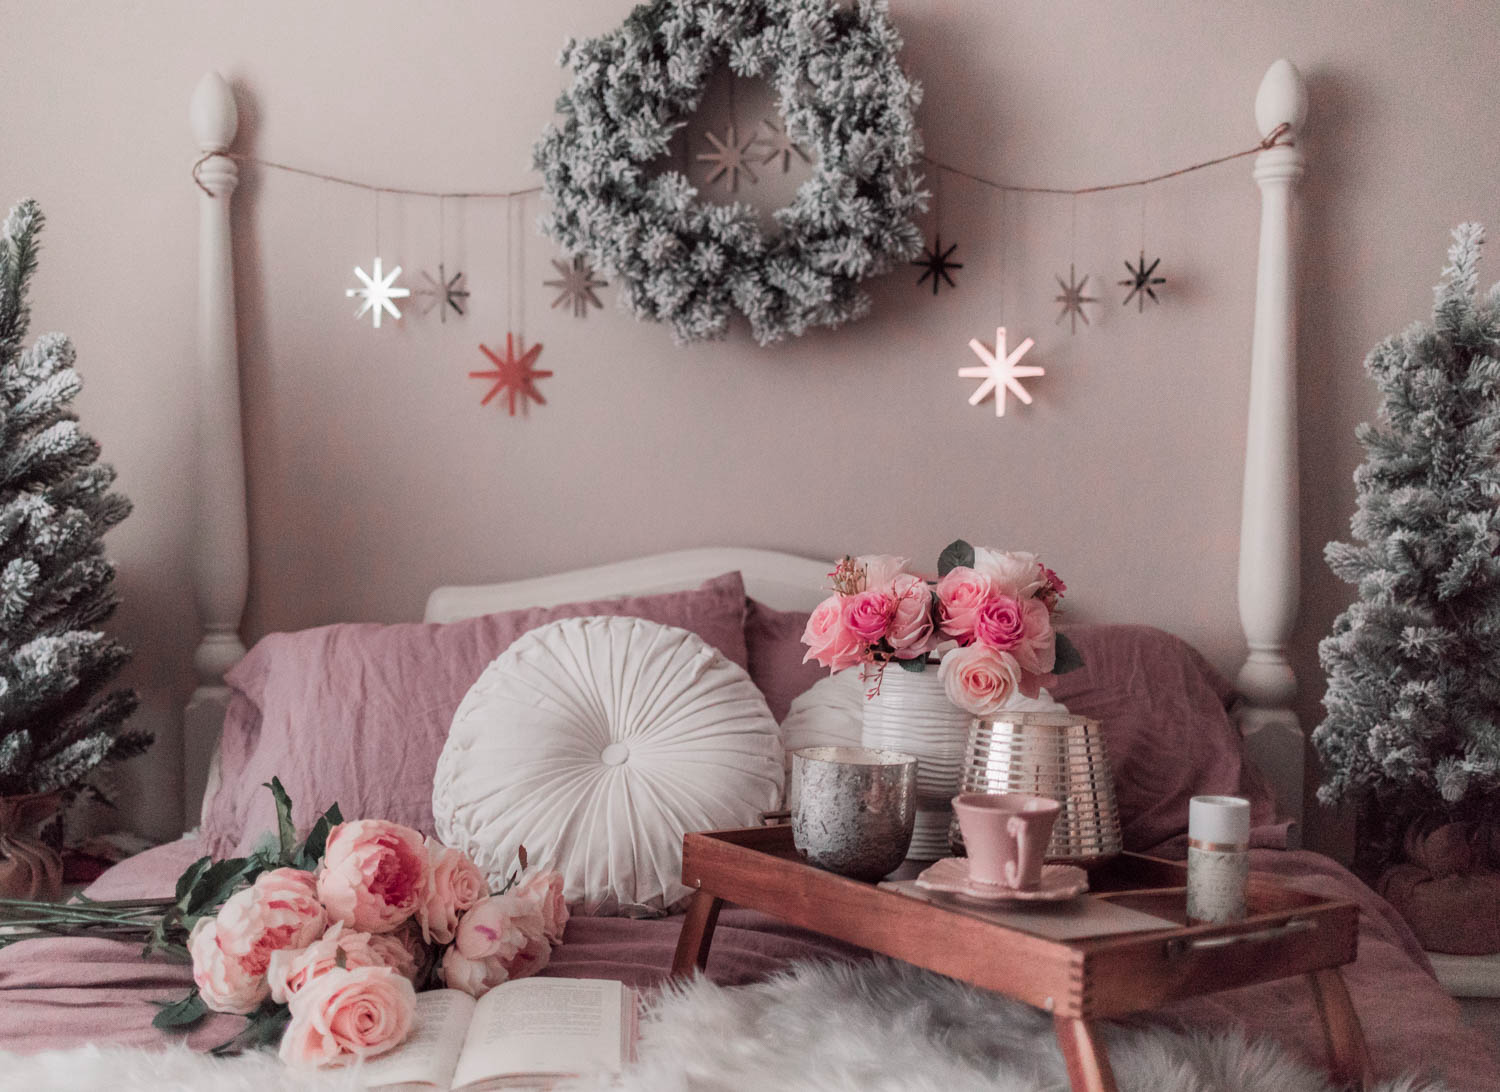 Elizabeth Hugen of Lizzie in Lace shares her feminine christmas decor